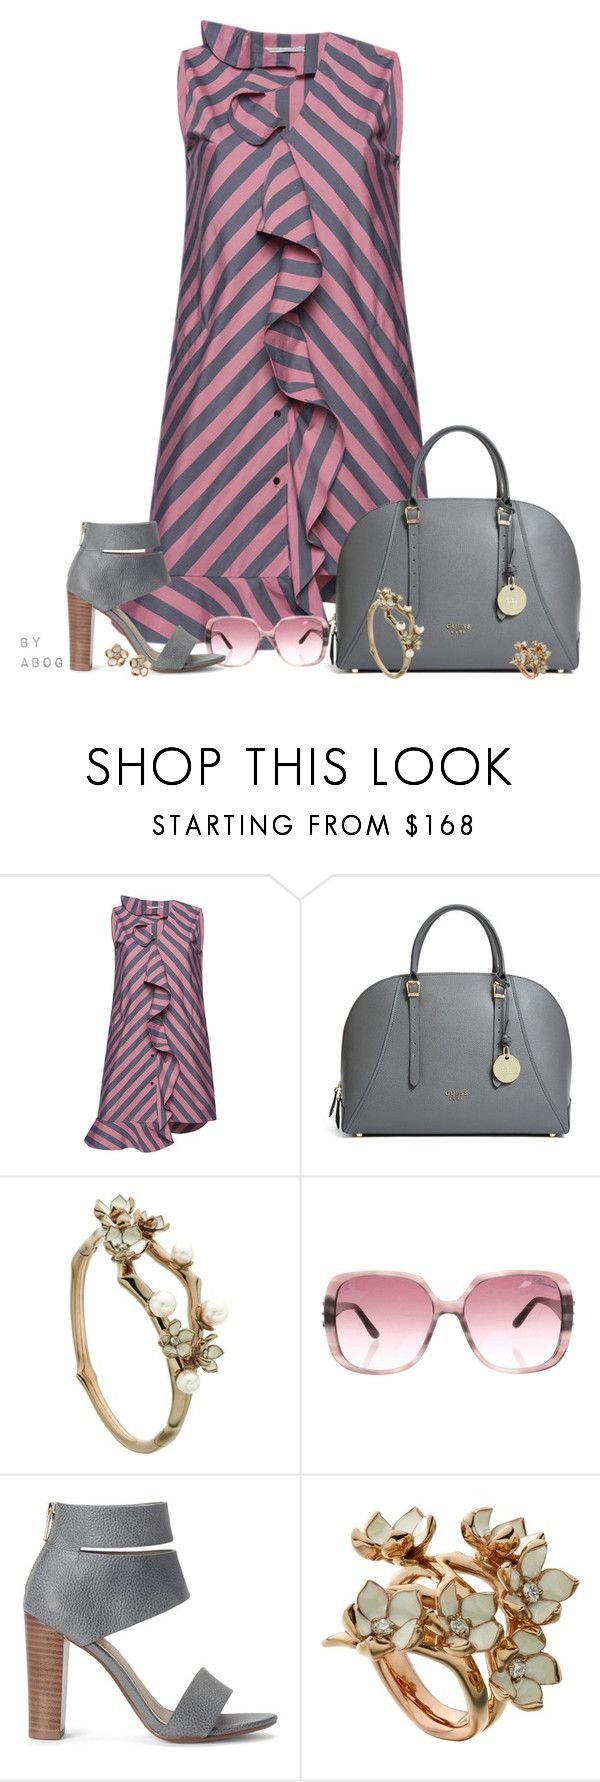 """""""Marco de Vincenzo Striped Popeline Rouche Dress"""" by karen-of-abog ❤ liked on Polyvore featuring Marco de Vincenzo, GUESS, Shaun Leane, Blumarine and Splendid"""